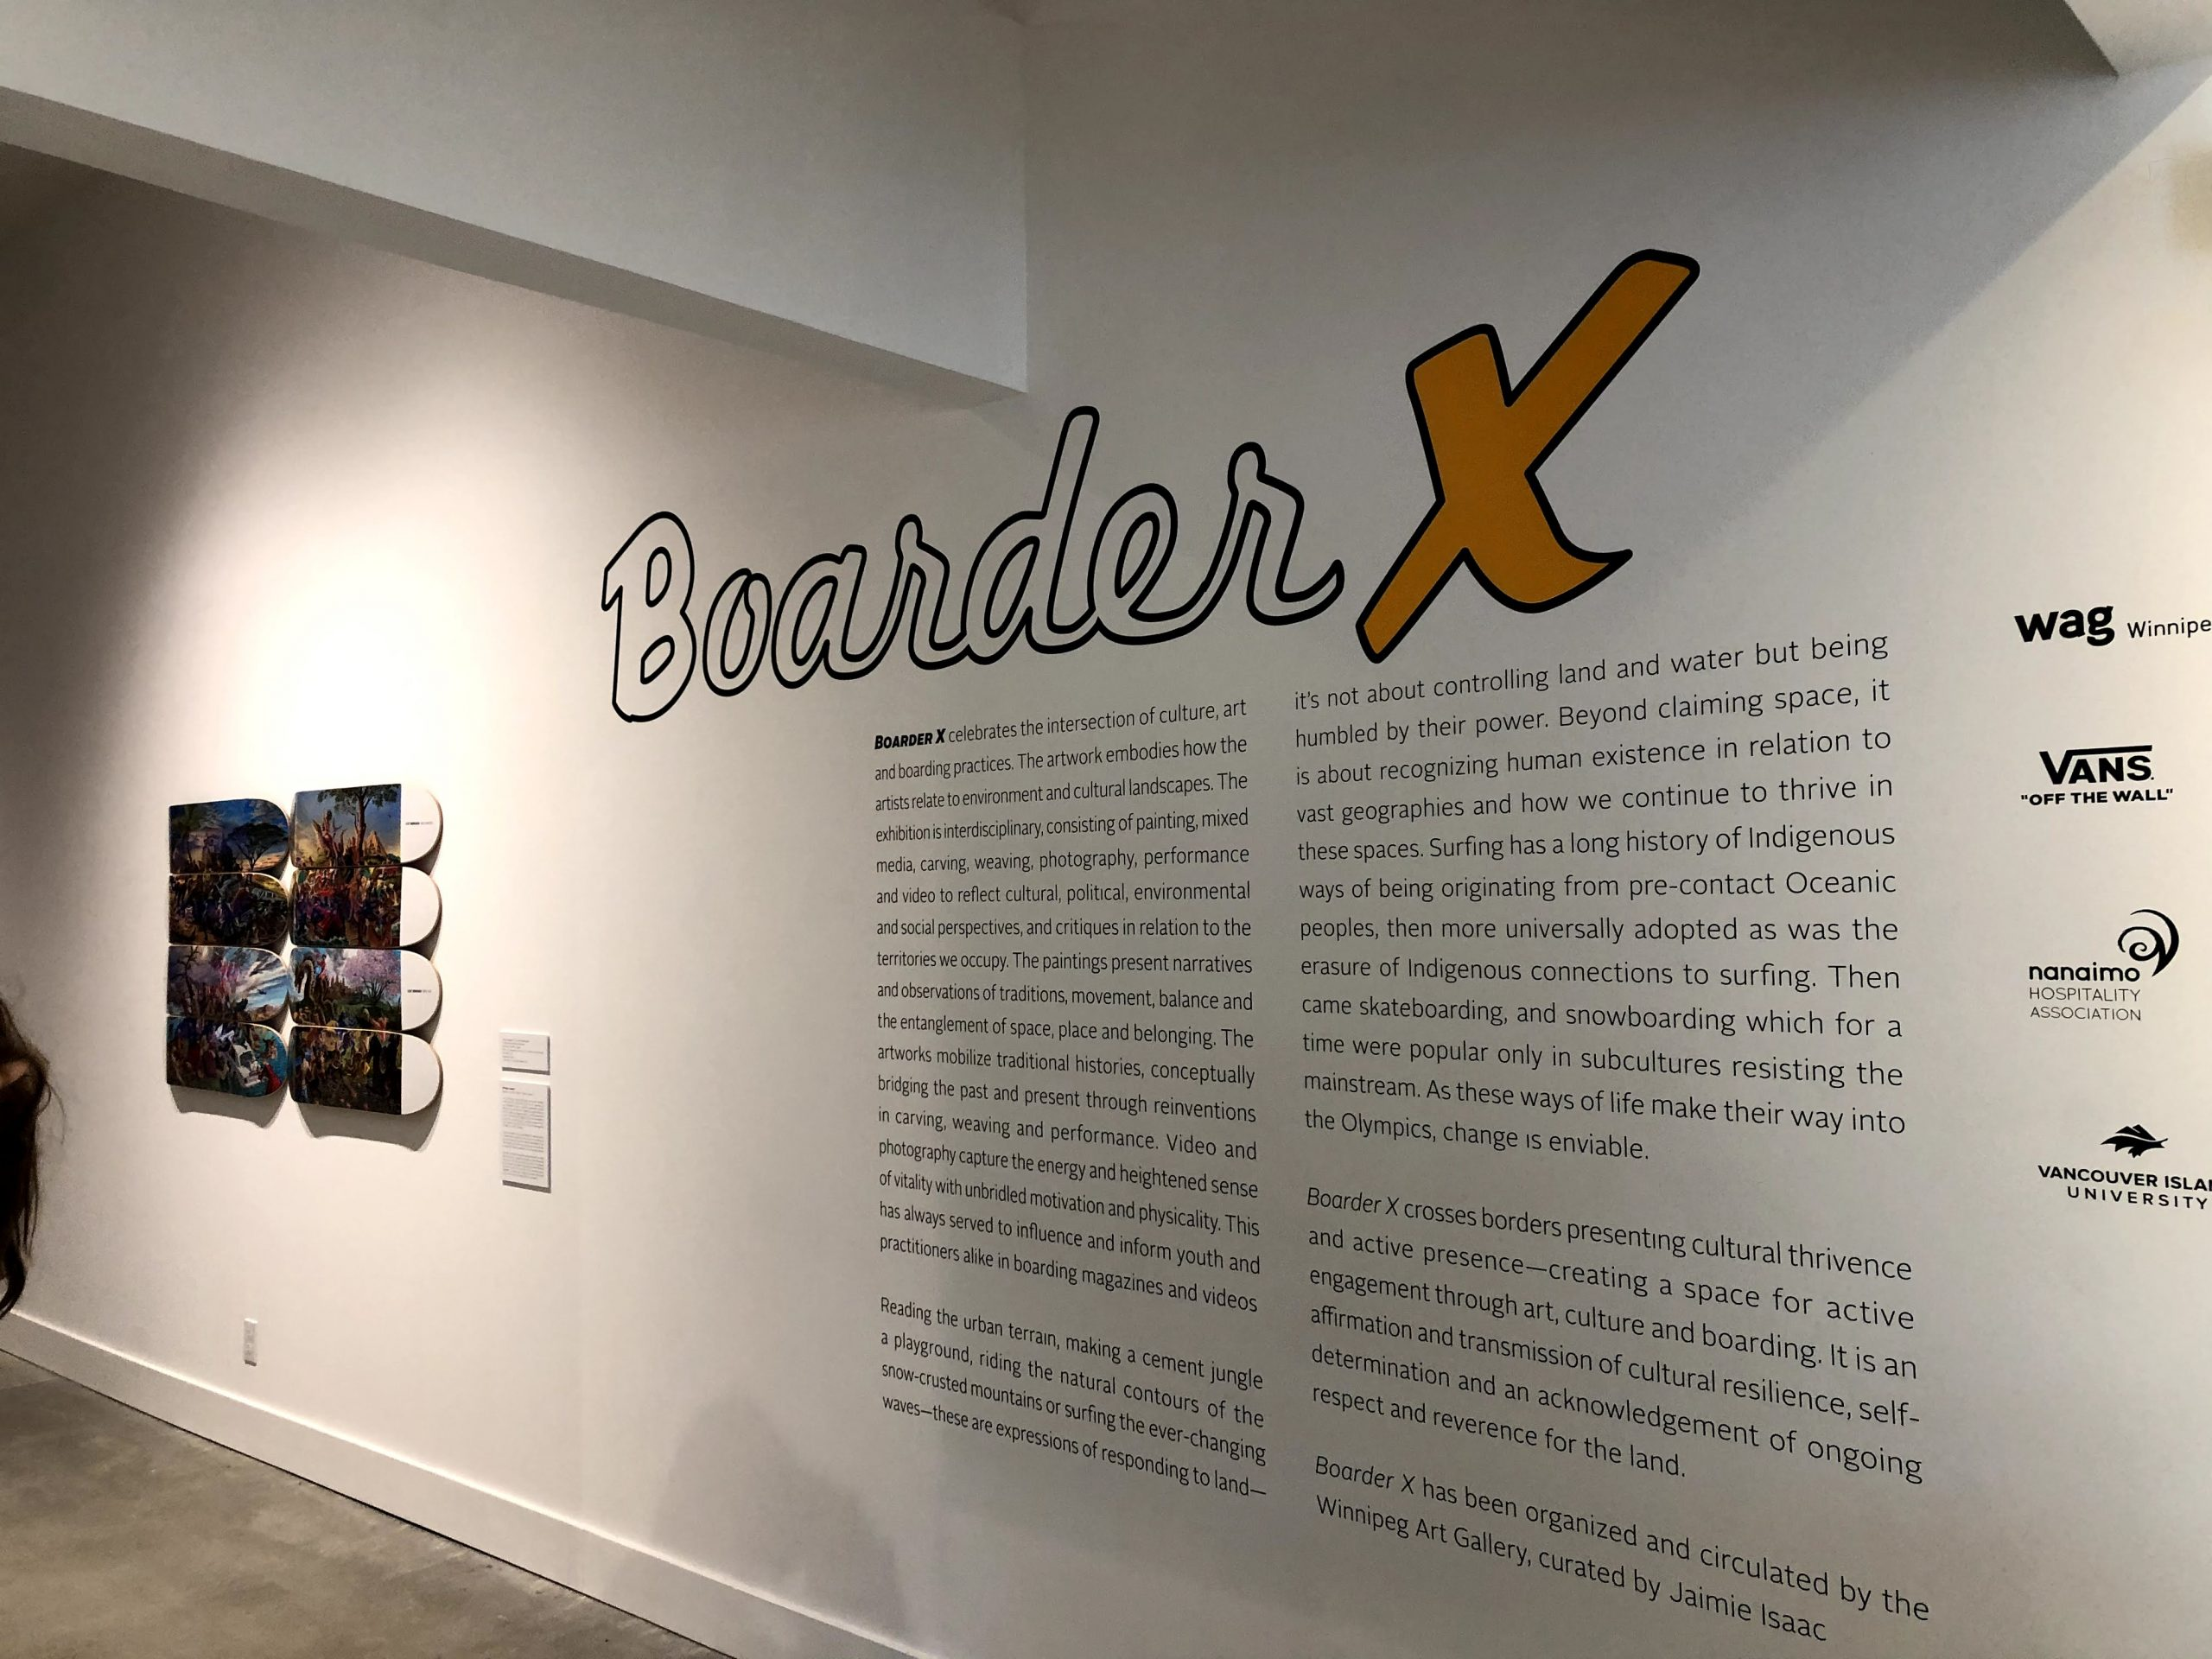 Opening section of the Boarder X gallery